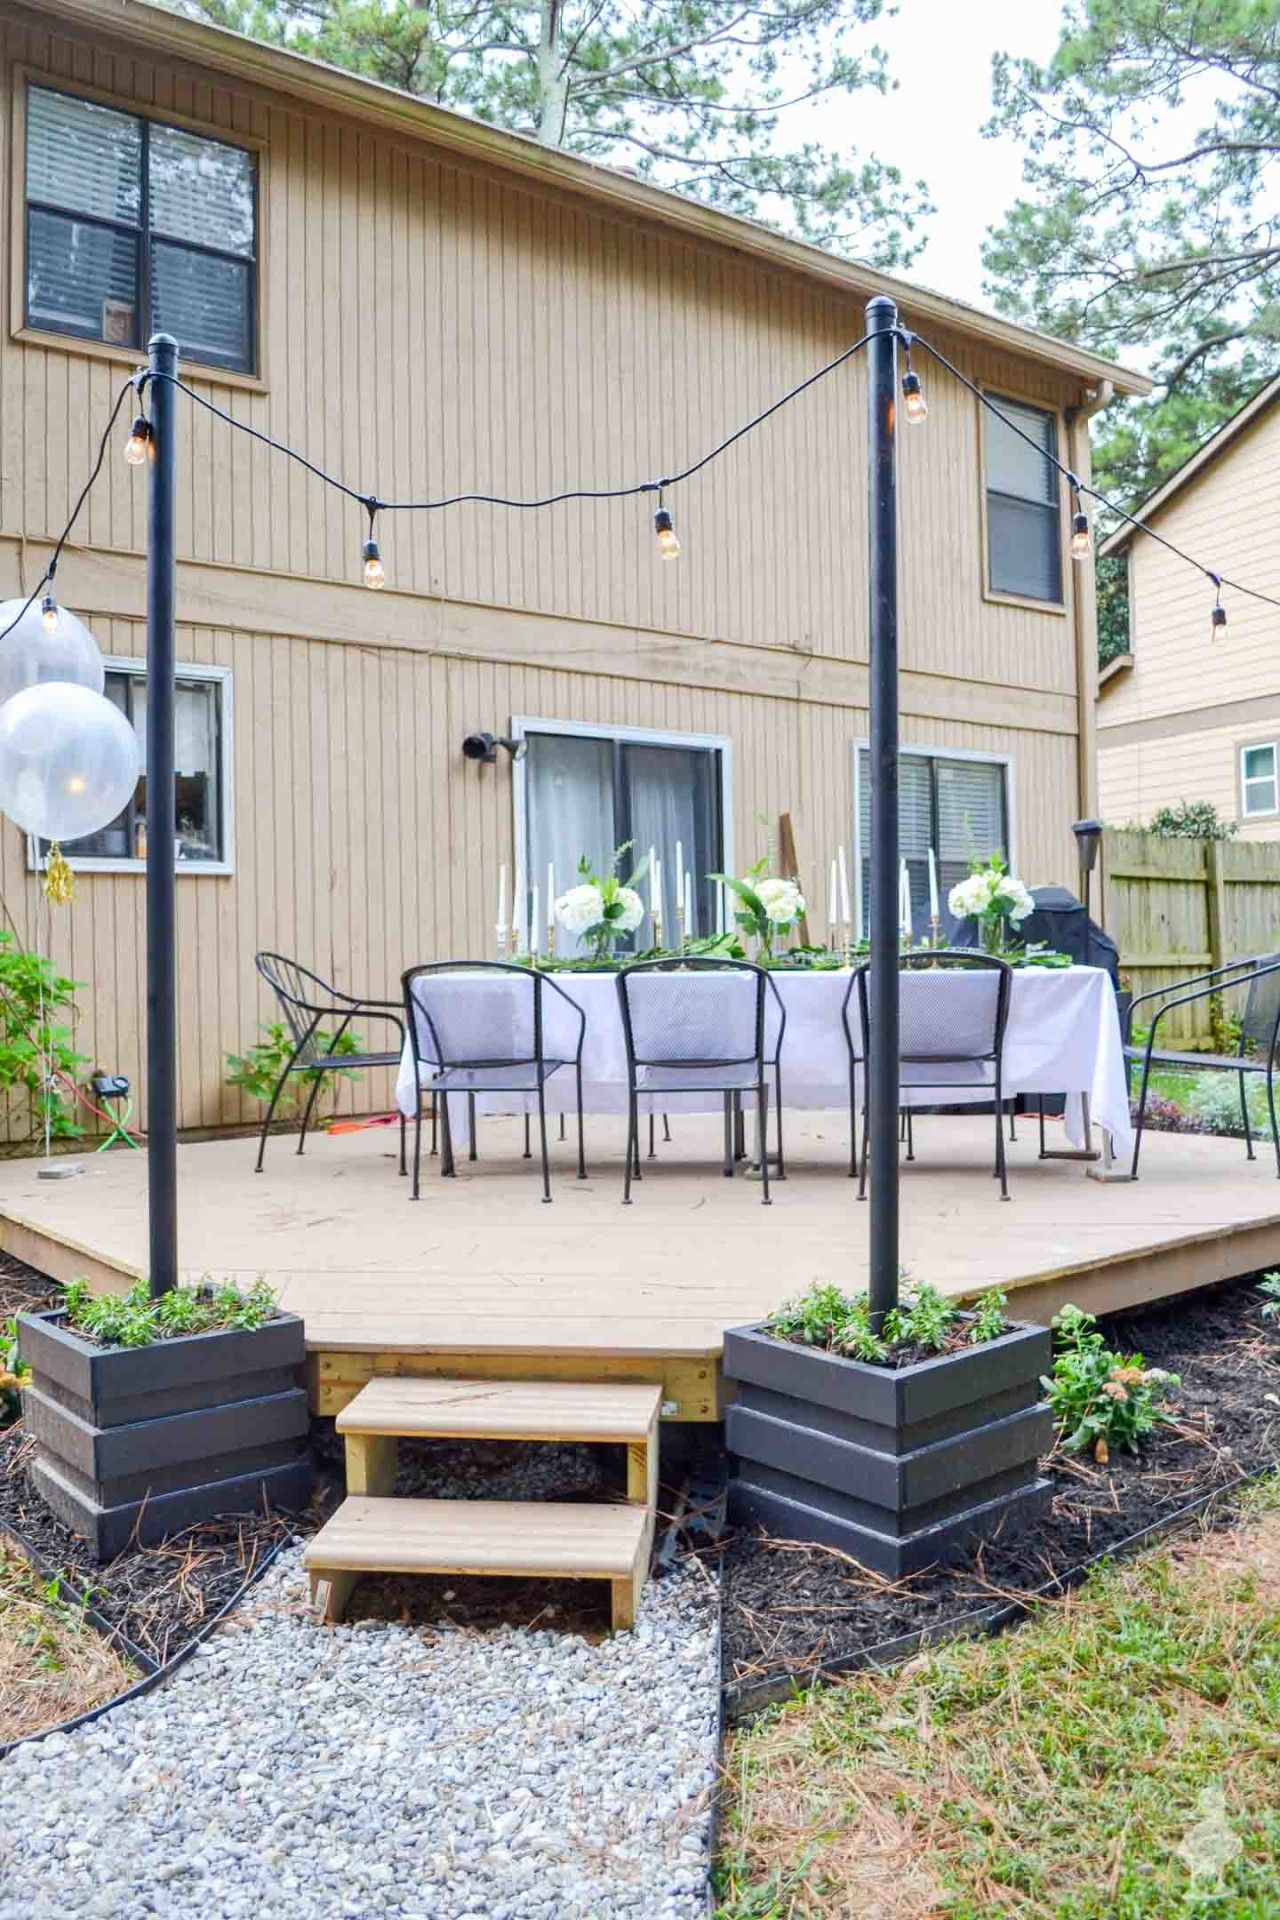 Pin On Ugly Duckling House Projects Posts